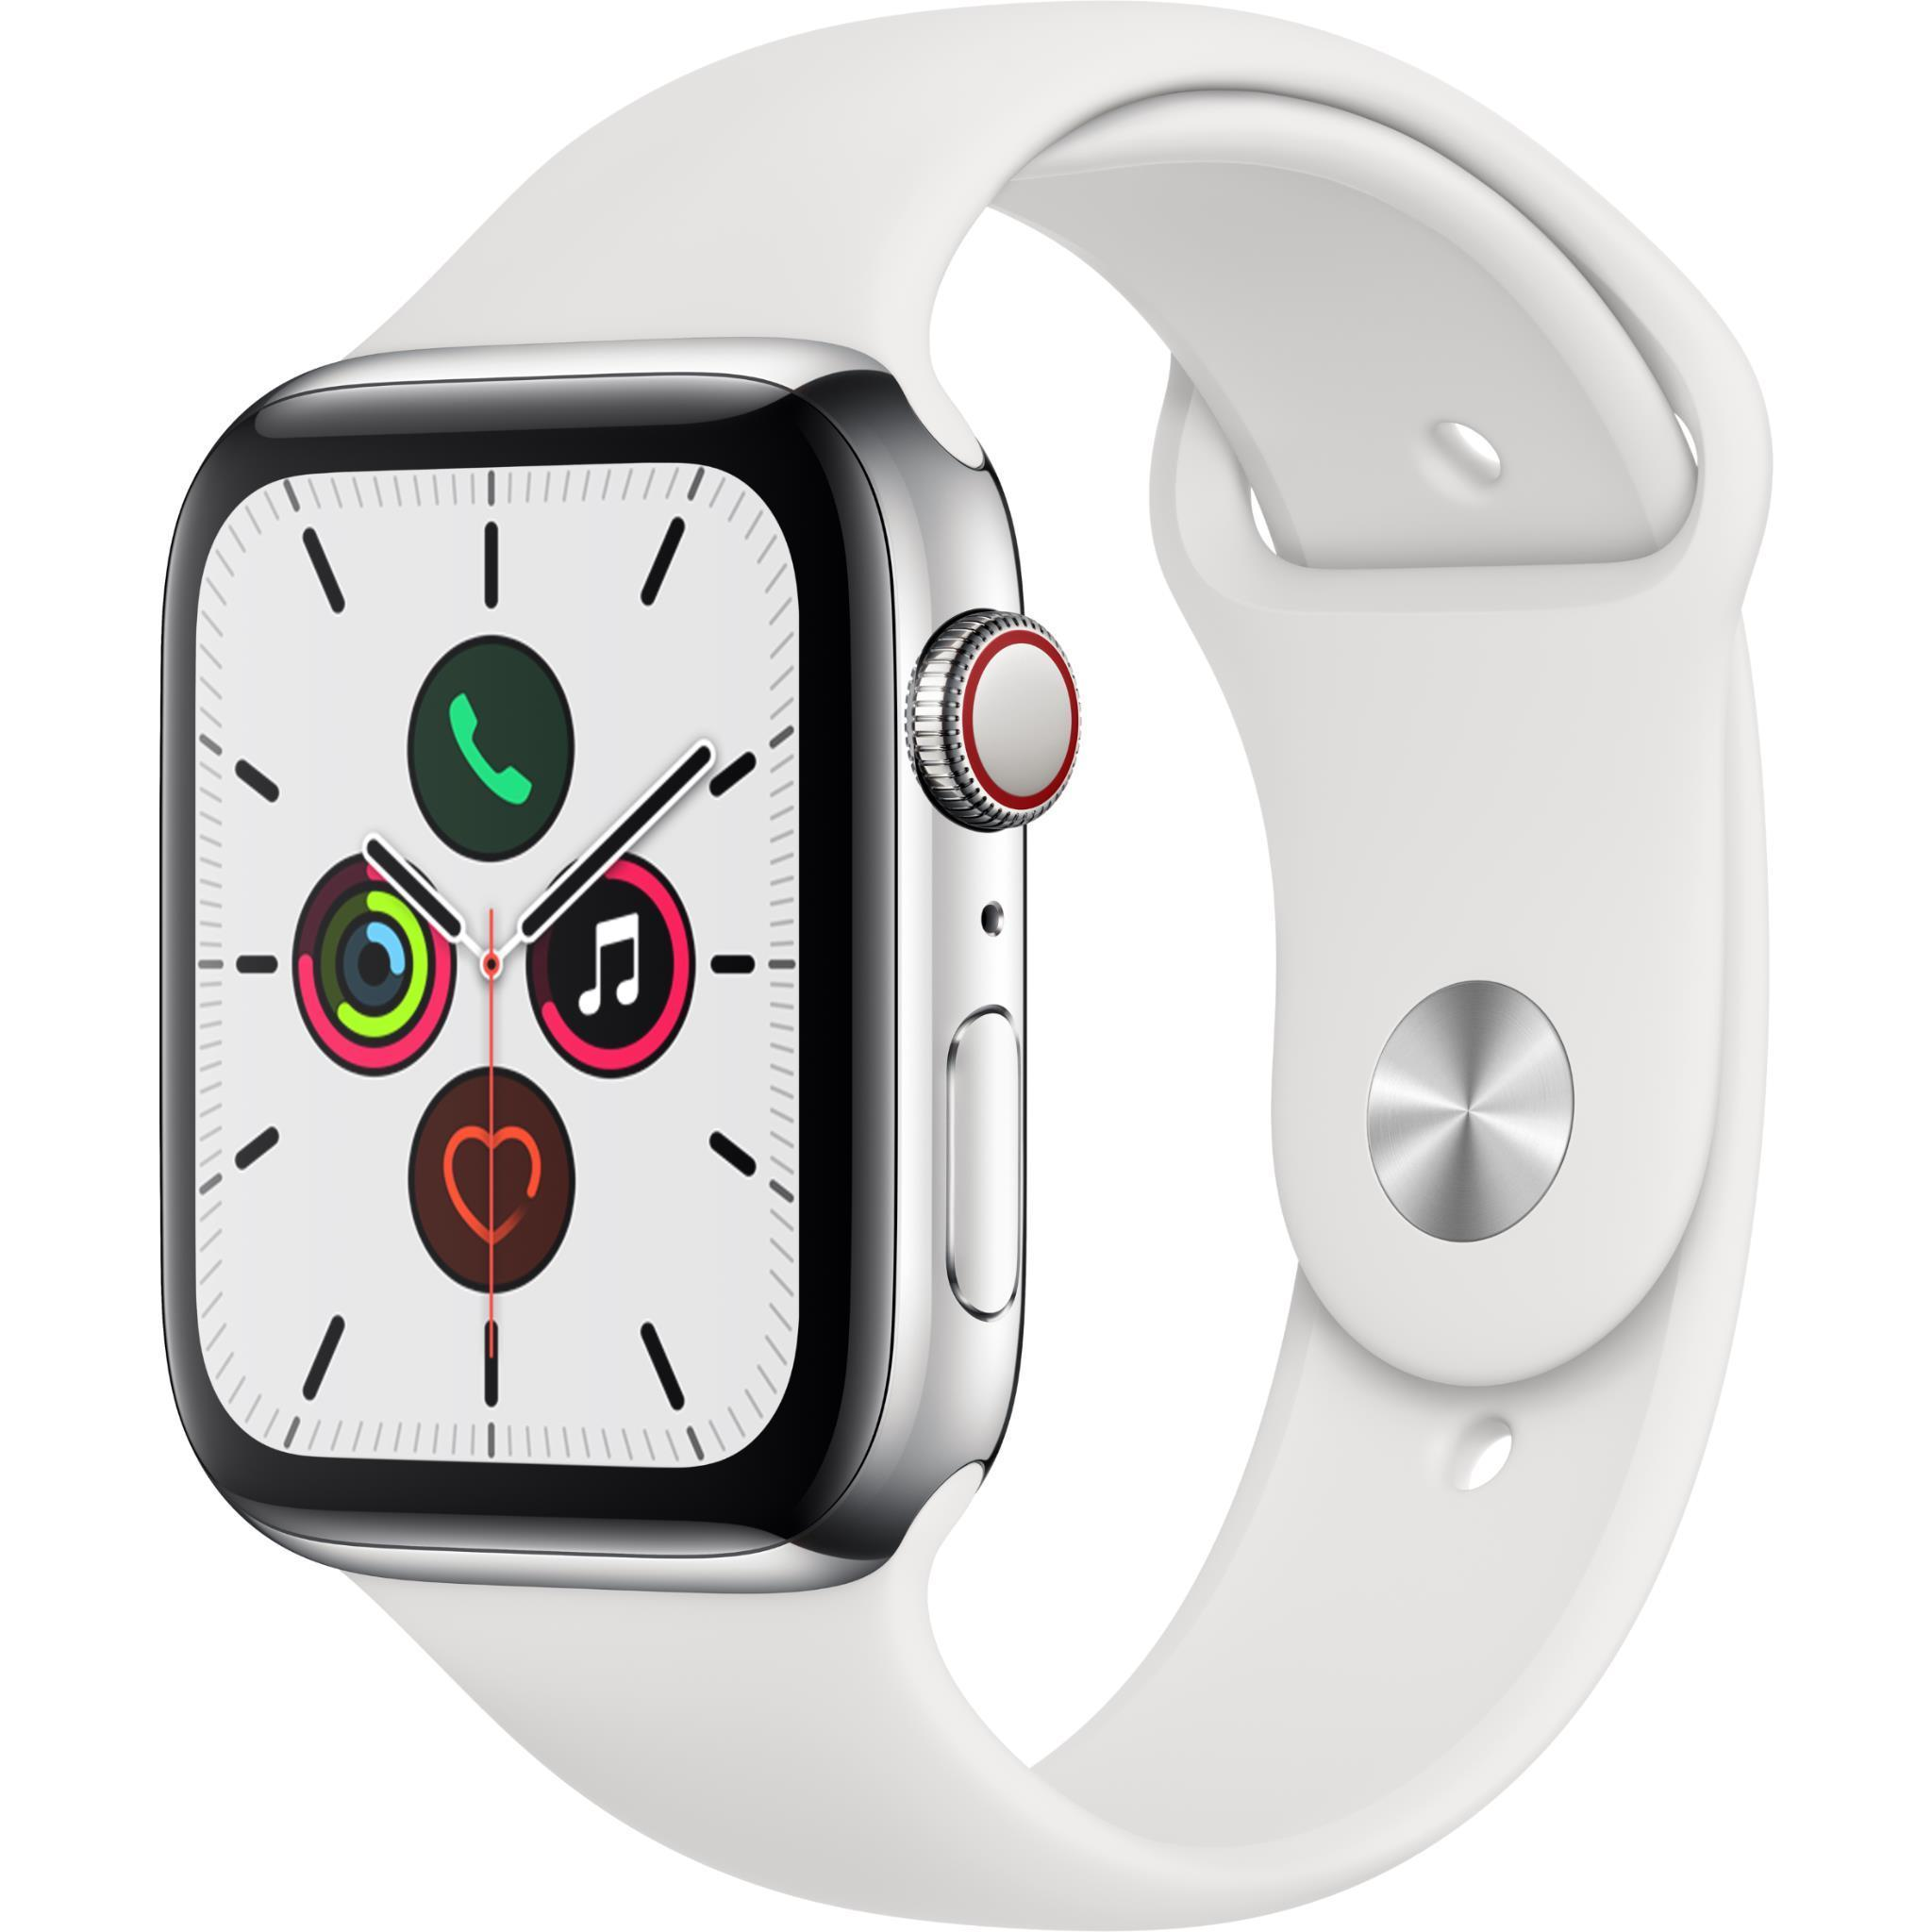 Apple Watch Series 5 44mm Silver Stainless Steel Case GPS + Cellular